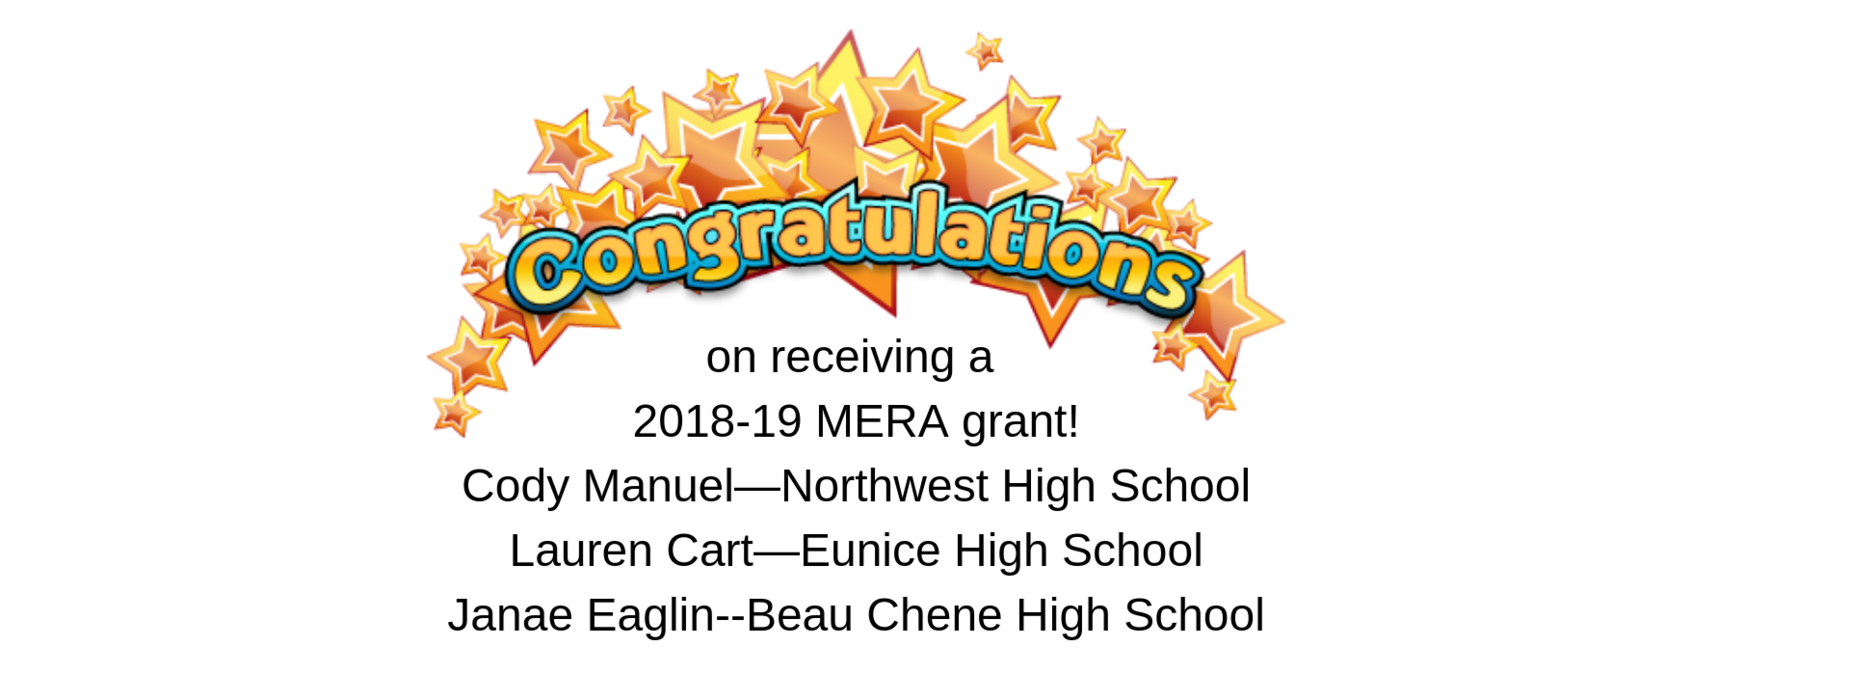 on receiving a   2018-19 MERA grant!  Cody Manuel—Northwest High School  Lauren Cart—Eunice High School  Janae Eaglin--Beau Chene High School